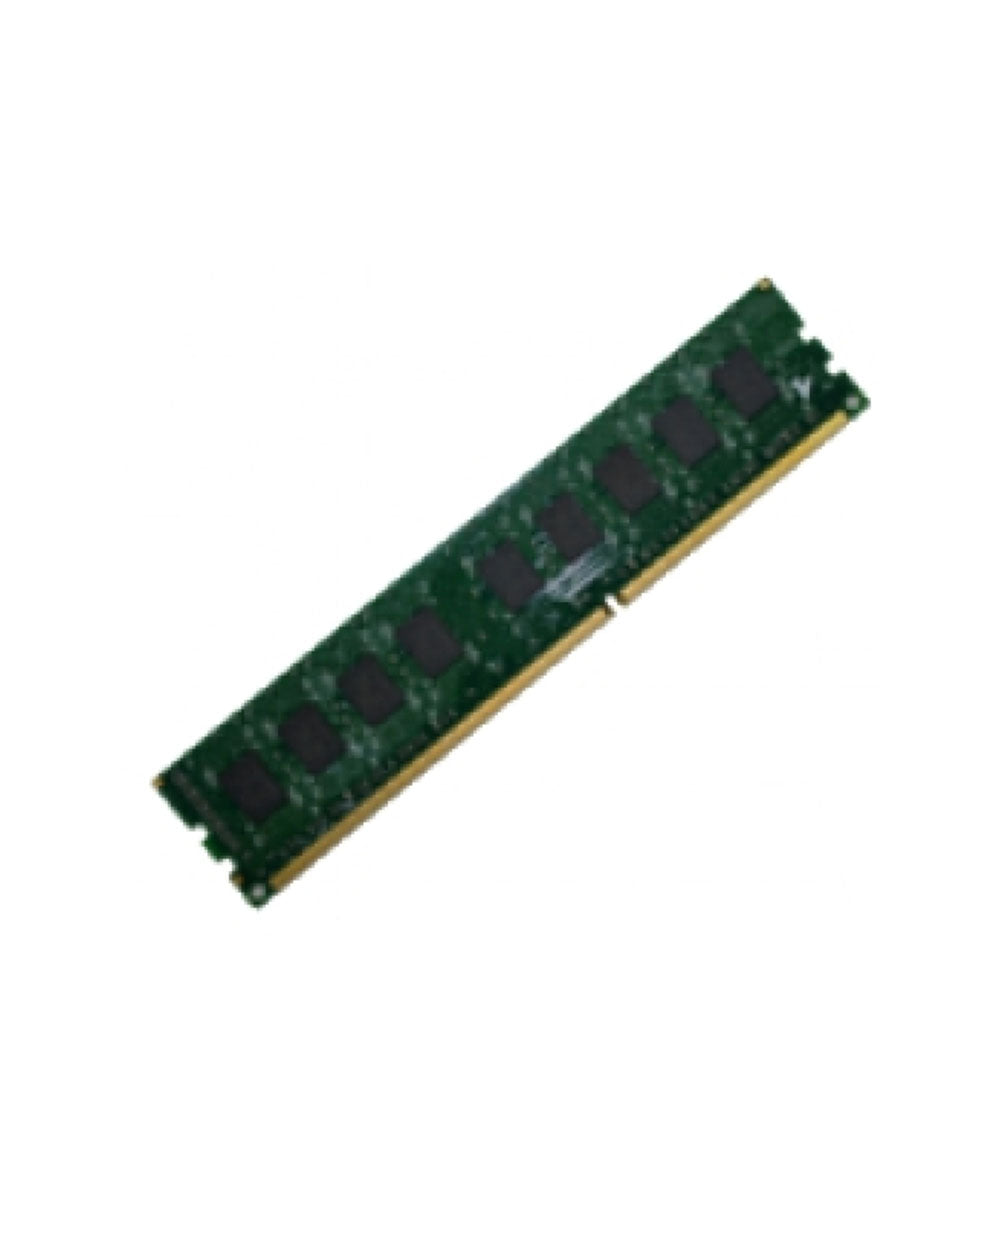 DDR4 PC4-21300 2666Mhz ECC Registered RDIMM 1rx4 A-Tech 16GB Module for QNAP TES-1885U-D1531 AT365040SRV-X1R8 Server Memory Ram